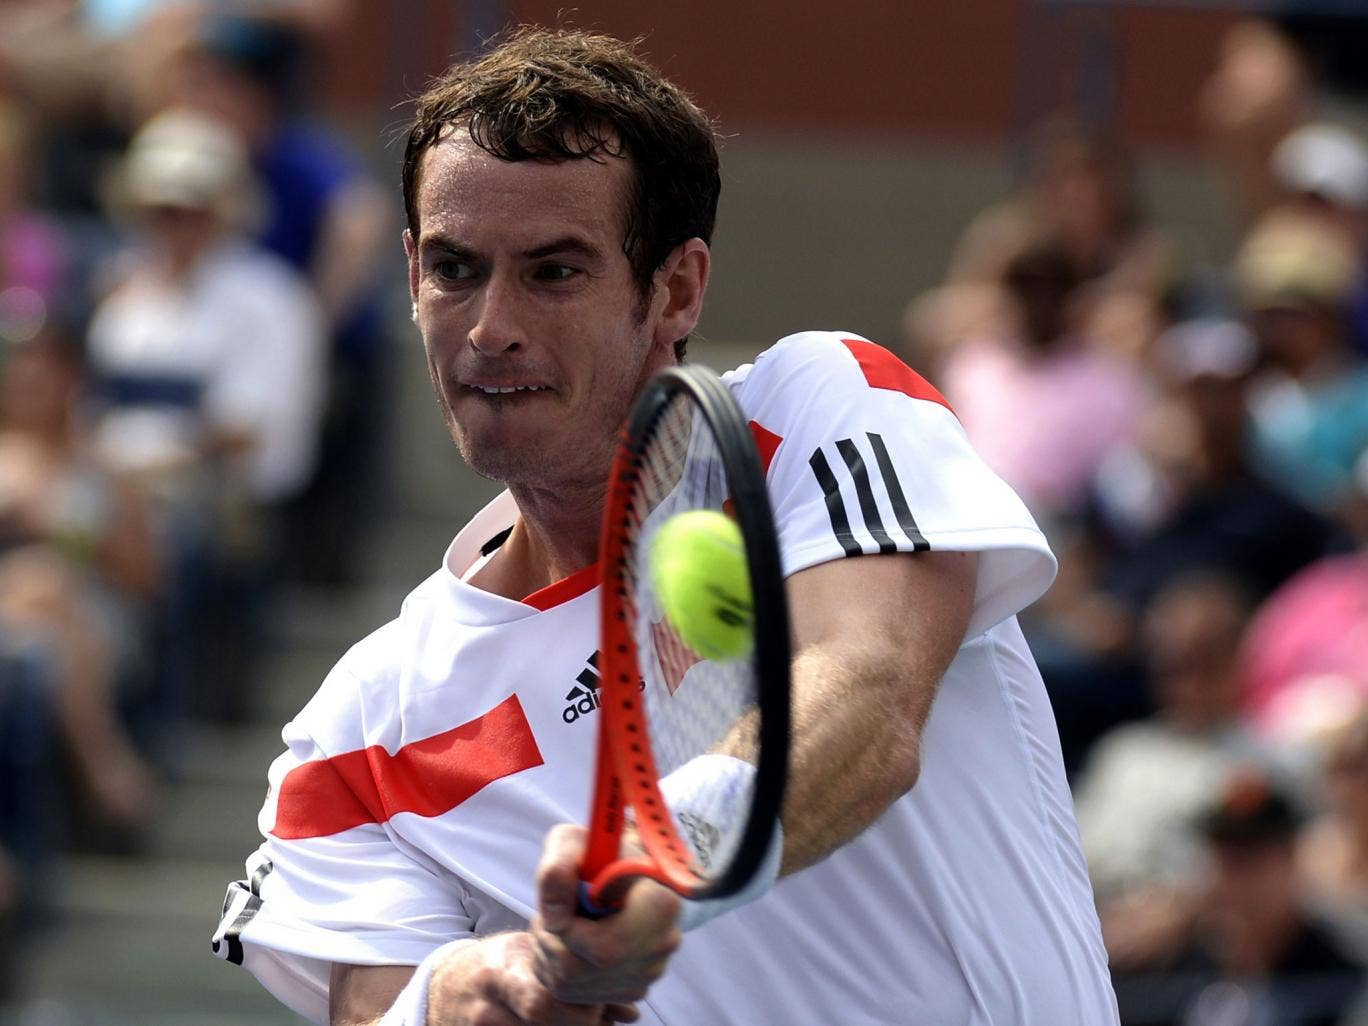 Andy Murray hits a return during his win over Florian Mayer